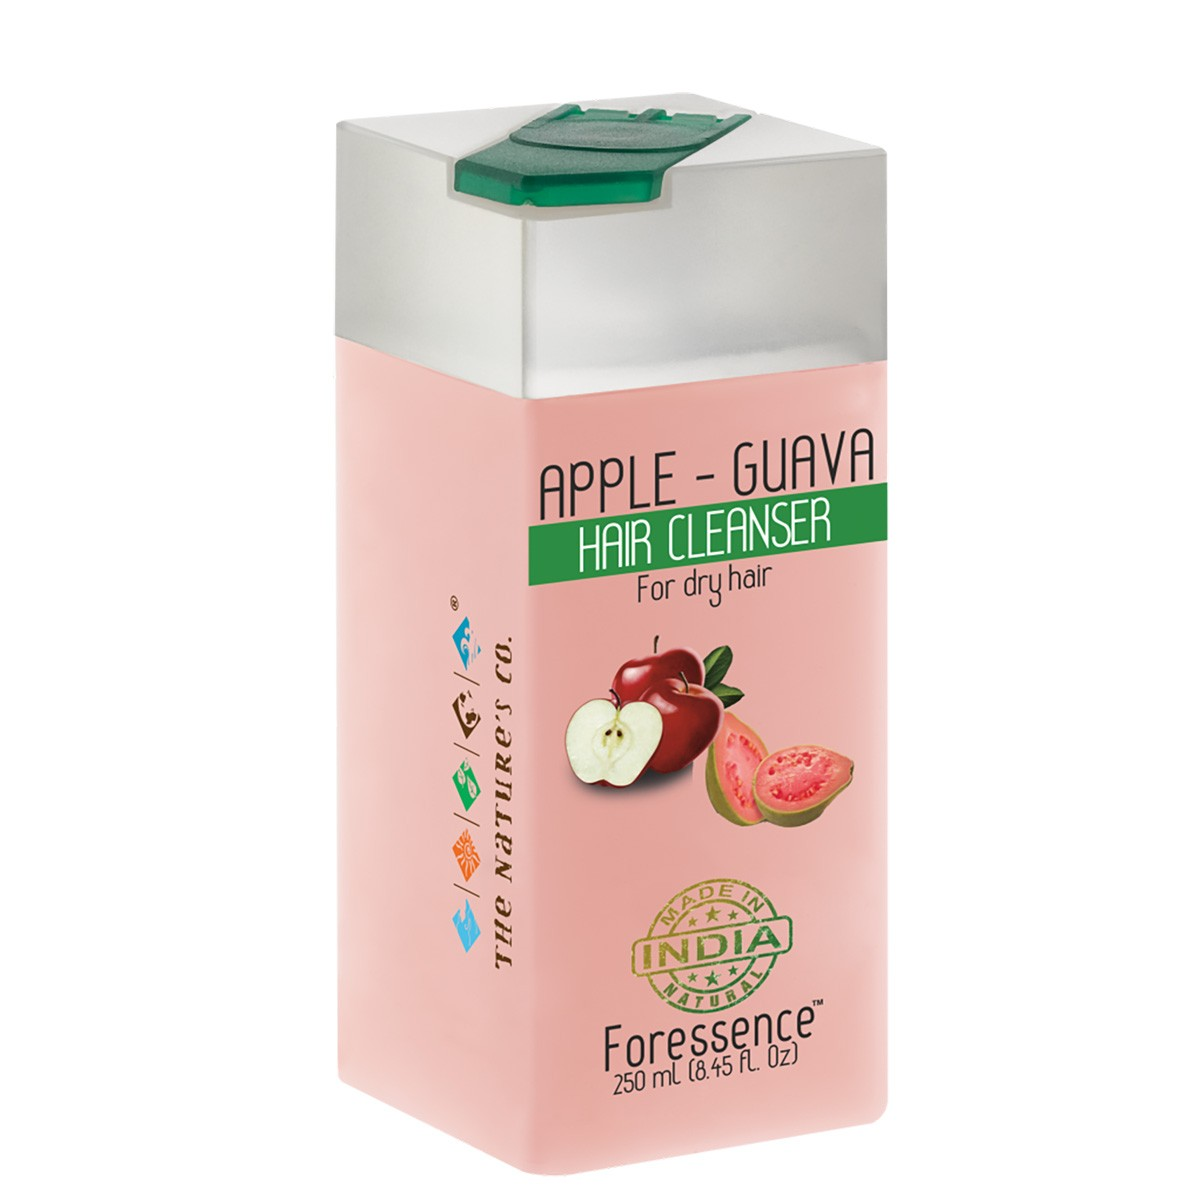 APPLE-GUAVA HAIR CLEANSER